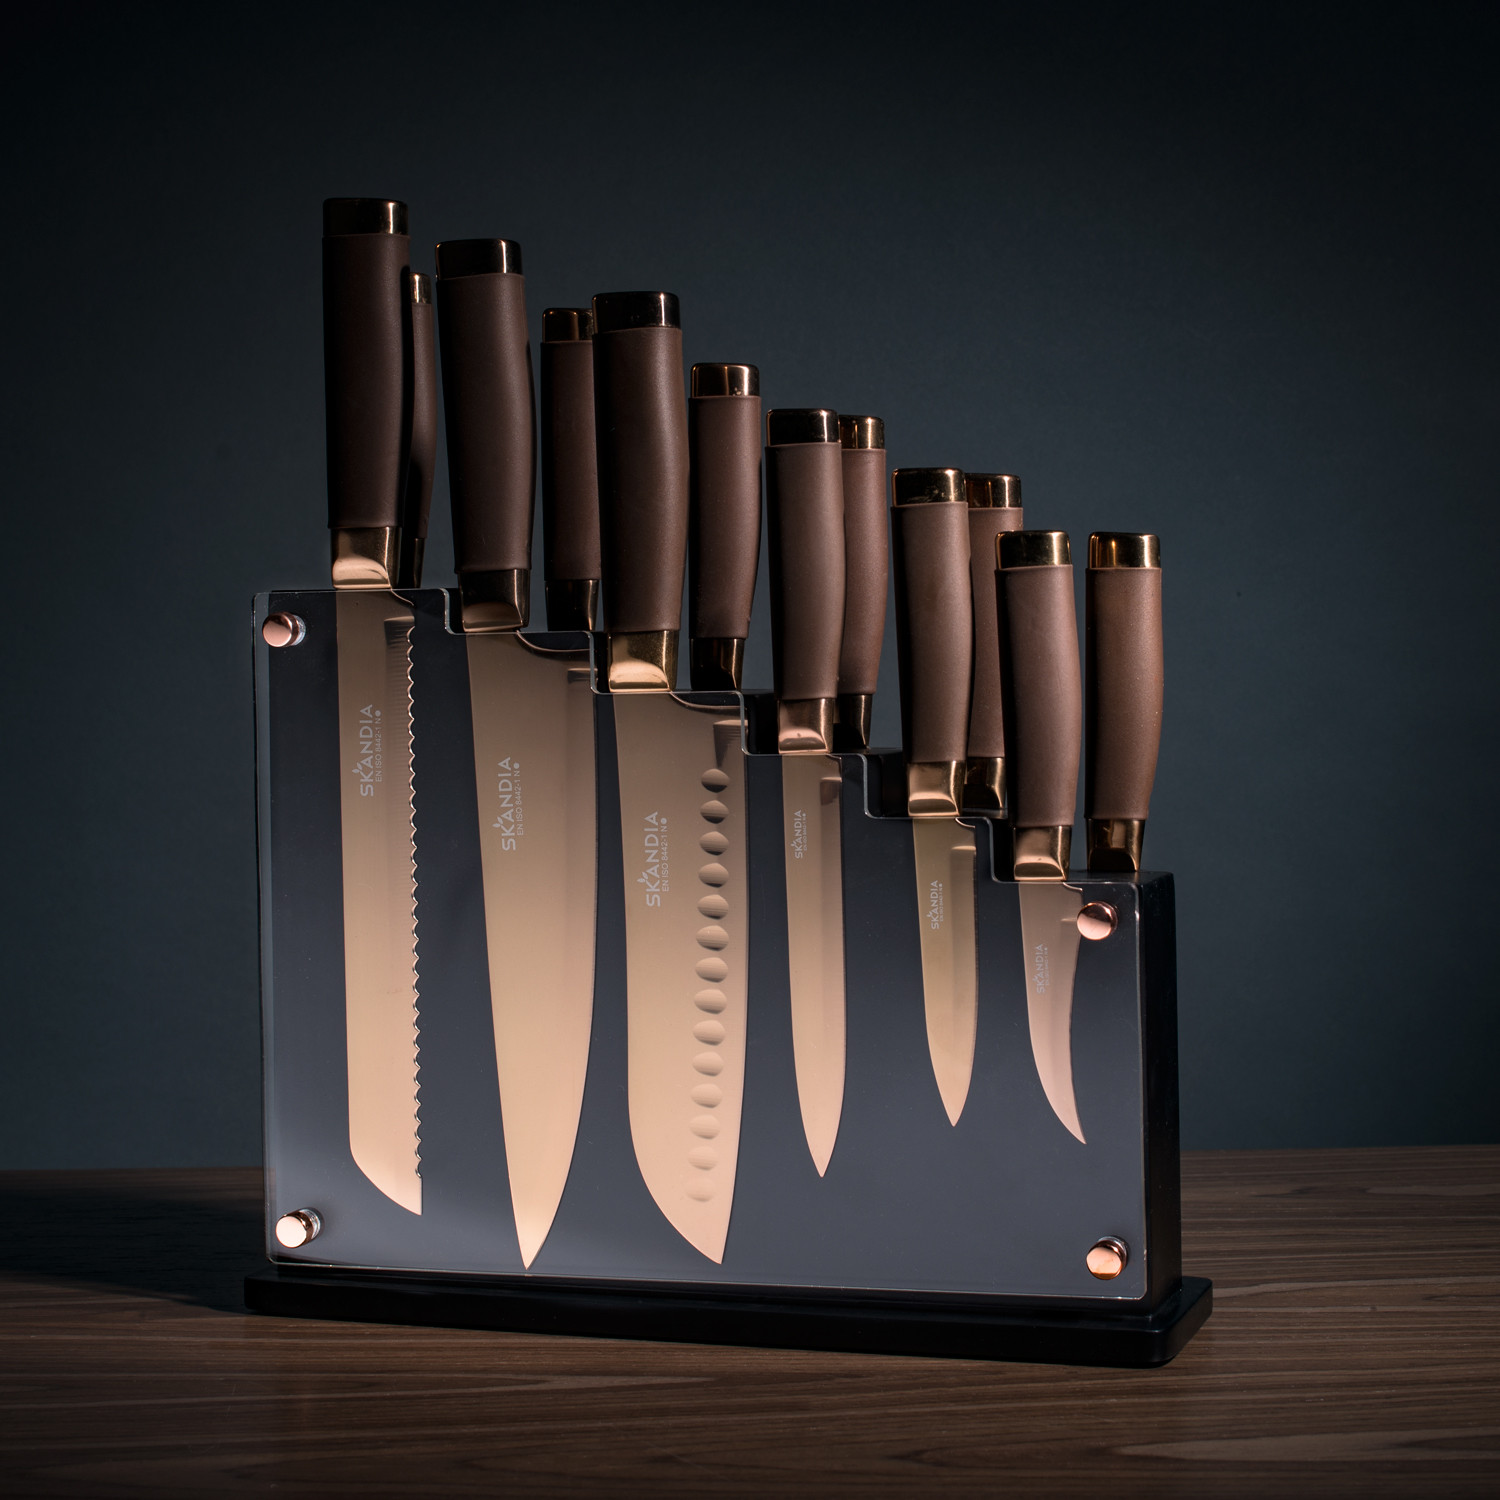 Cool hampton forge knife set for kitchen with hampton forge cutlery set